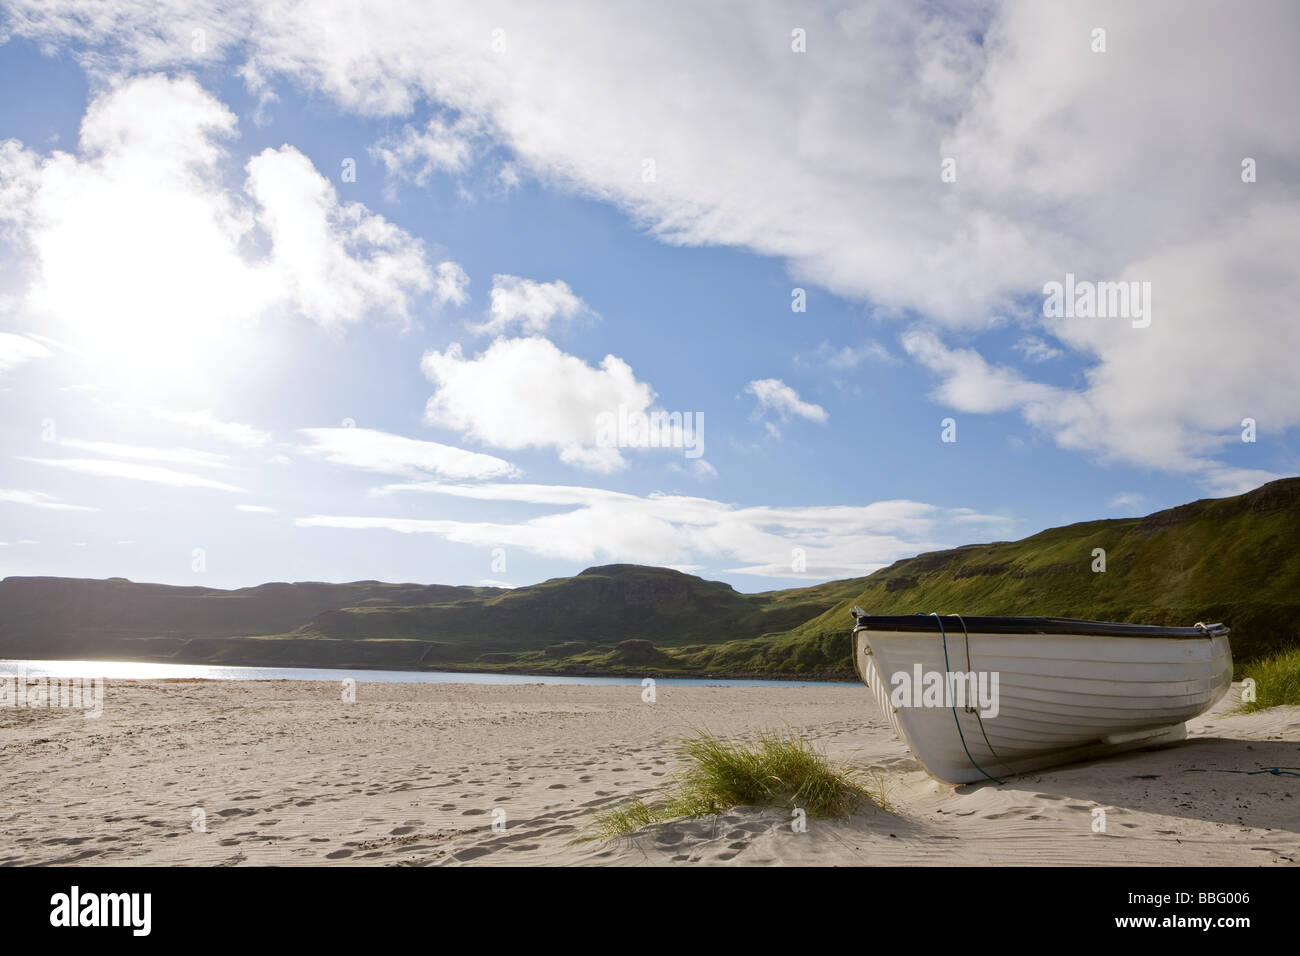 A rowboat on a beach on the isle of mull - Stock Image